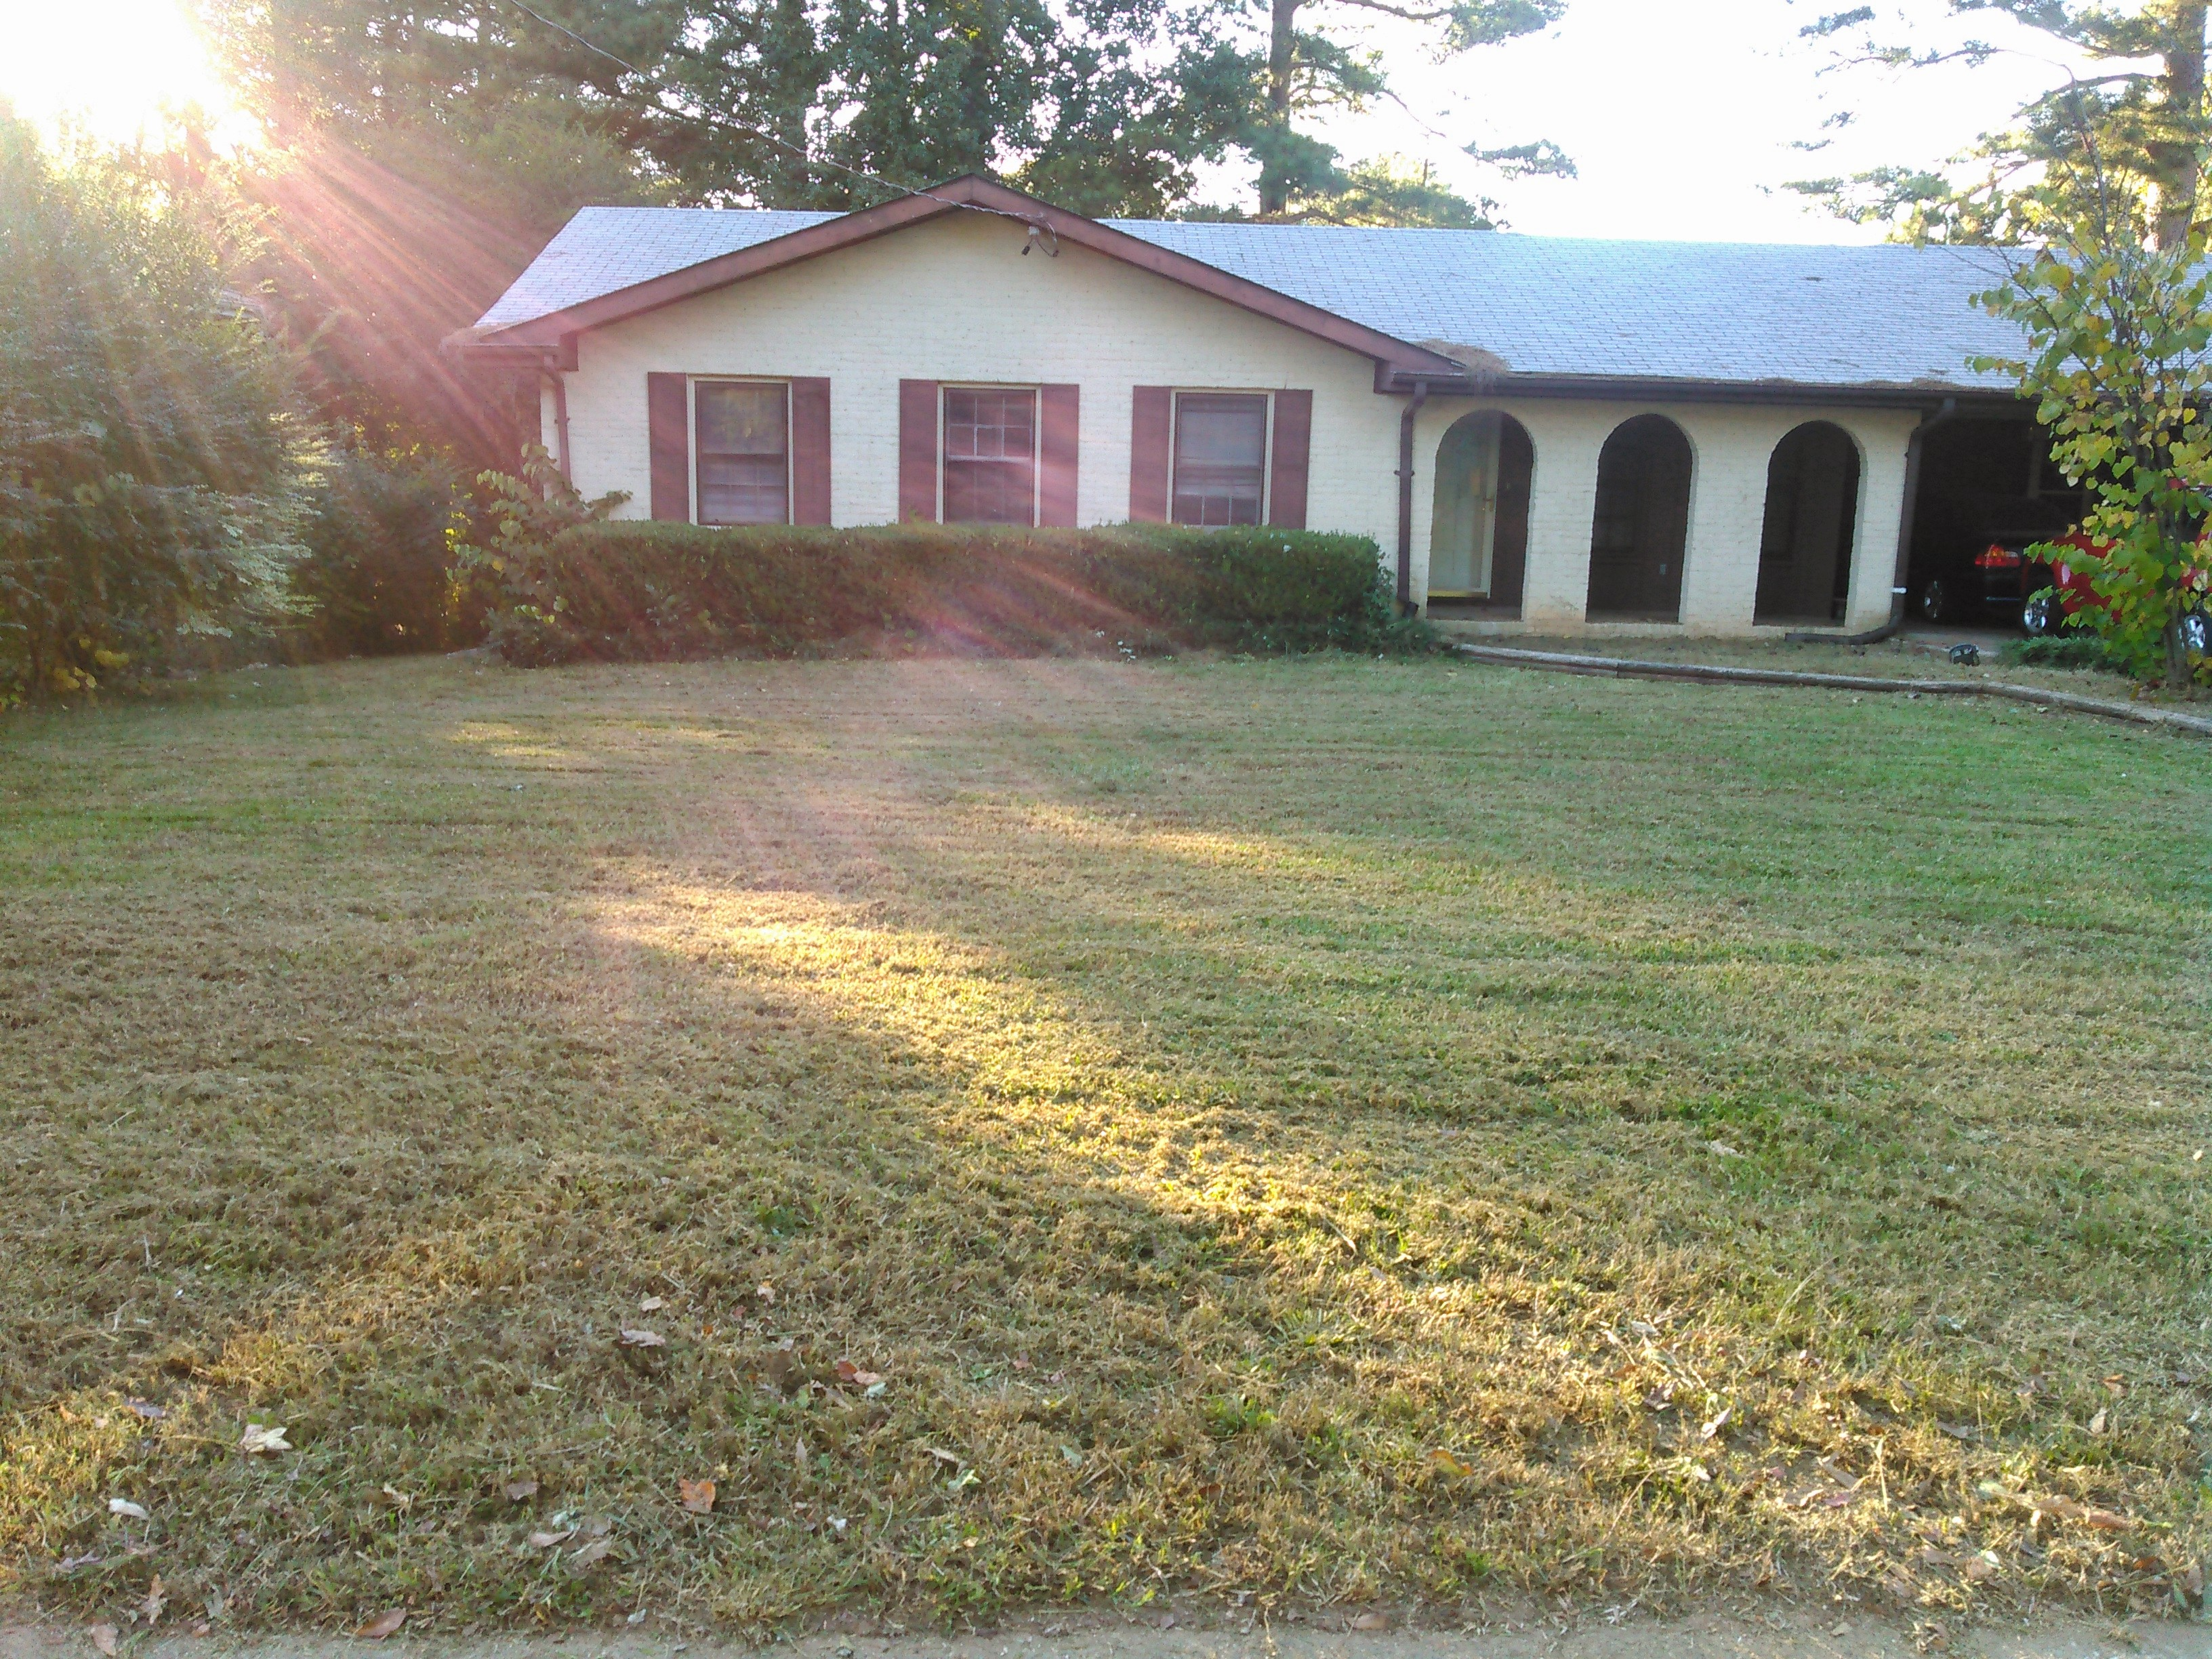 Yard mowing company in Atlanta, GA, 30311